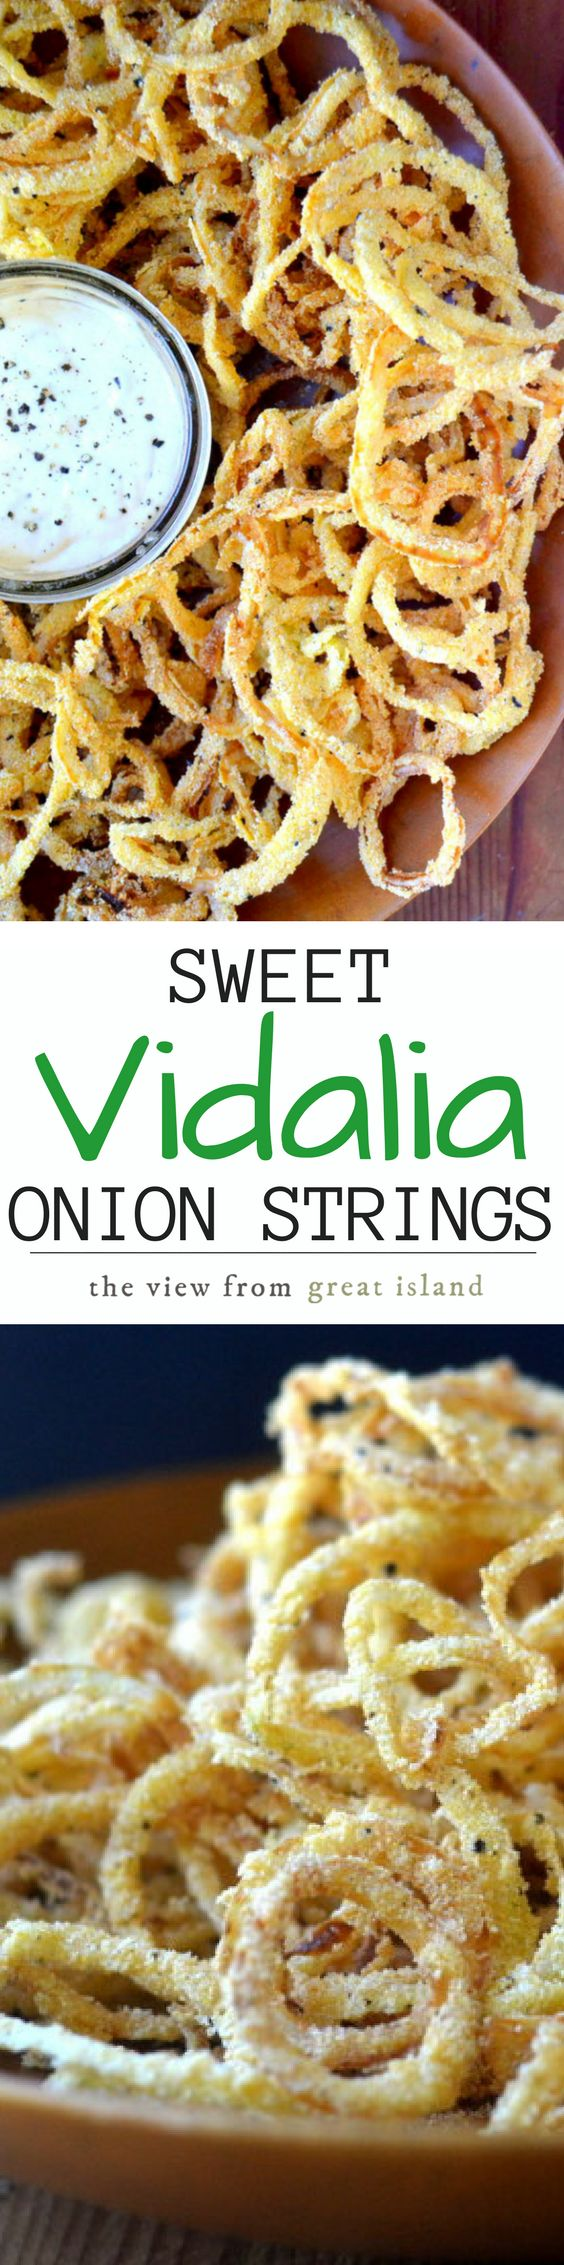 Vidalia Onion Strings with Horseradish Aioli might just be the world's most perfect appetizer, these thin sweet onions rings are fried to perfection in minutes!   sweet onions   onion rings   easy appetizer   game night  